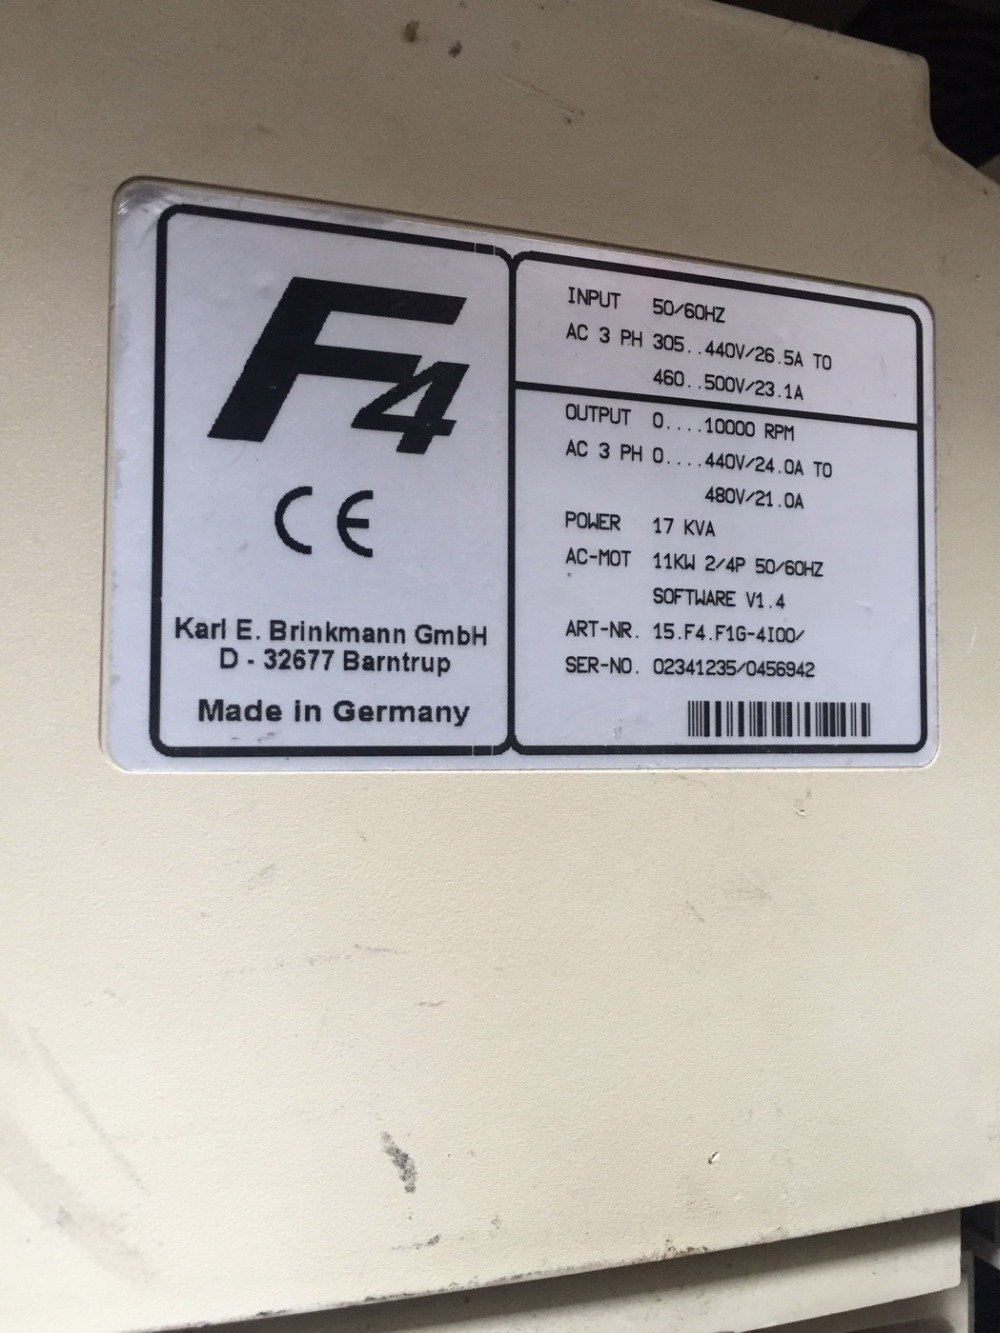 15.F4 F1G-4I00 11KW 380V  inverter used in good condition 30days warranty defender avr real 1000